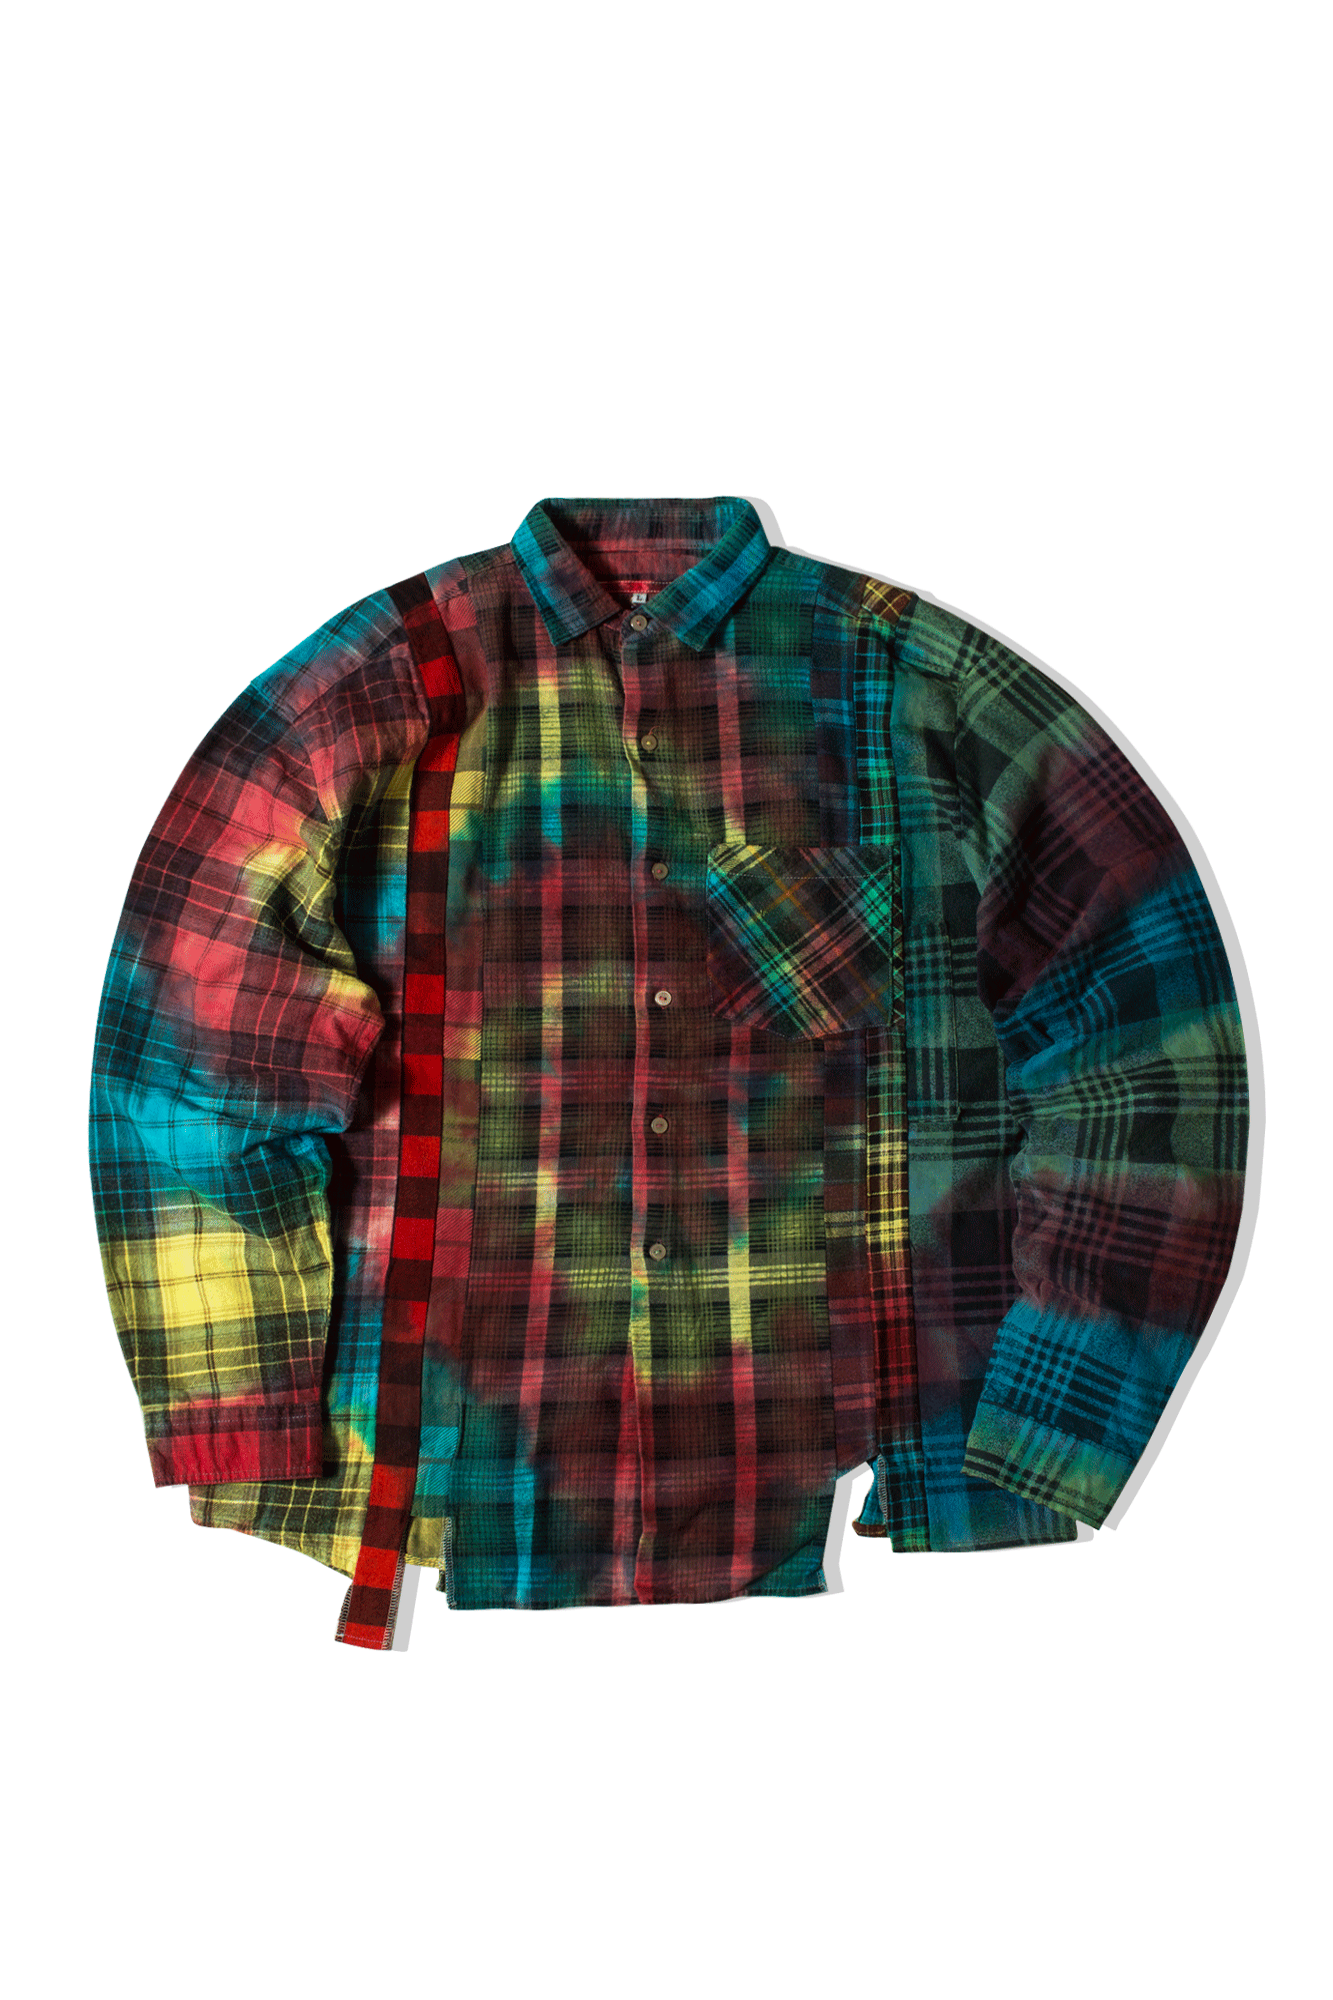 Tie Dye 7 Cuts Flannel Shirt Multicolore